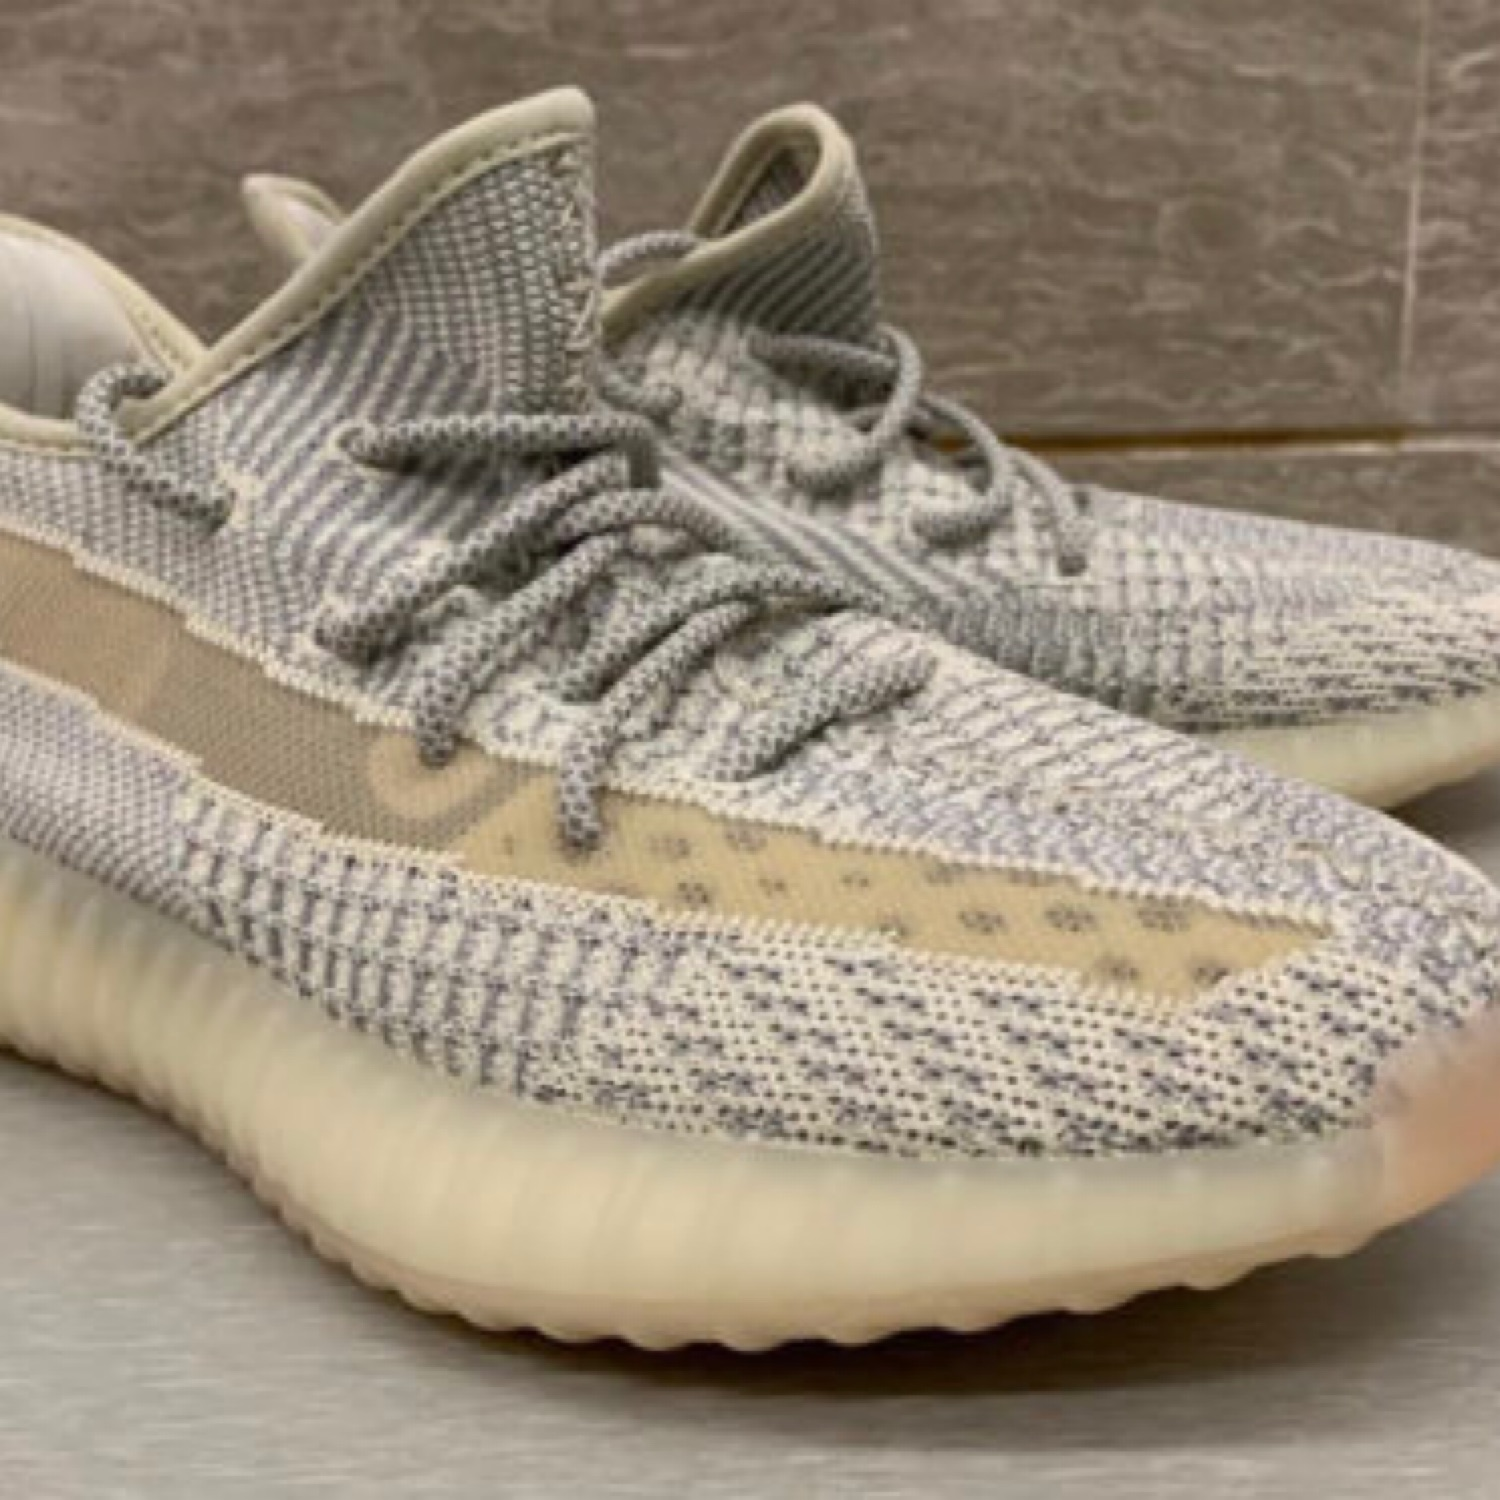 sports shoes 745ae d1042 Adidas Yeezy Boost 350 V2 Lundmark Size 11.5